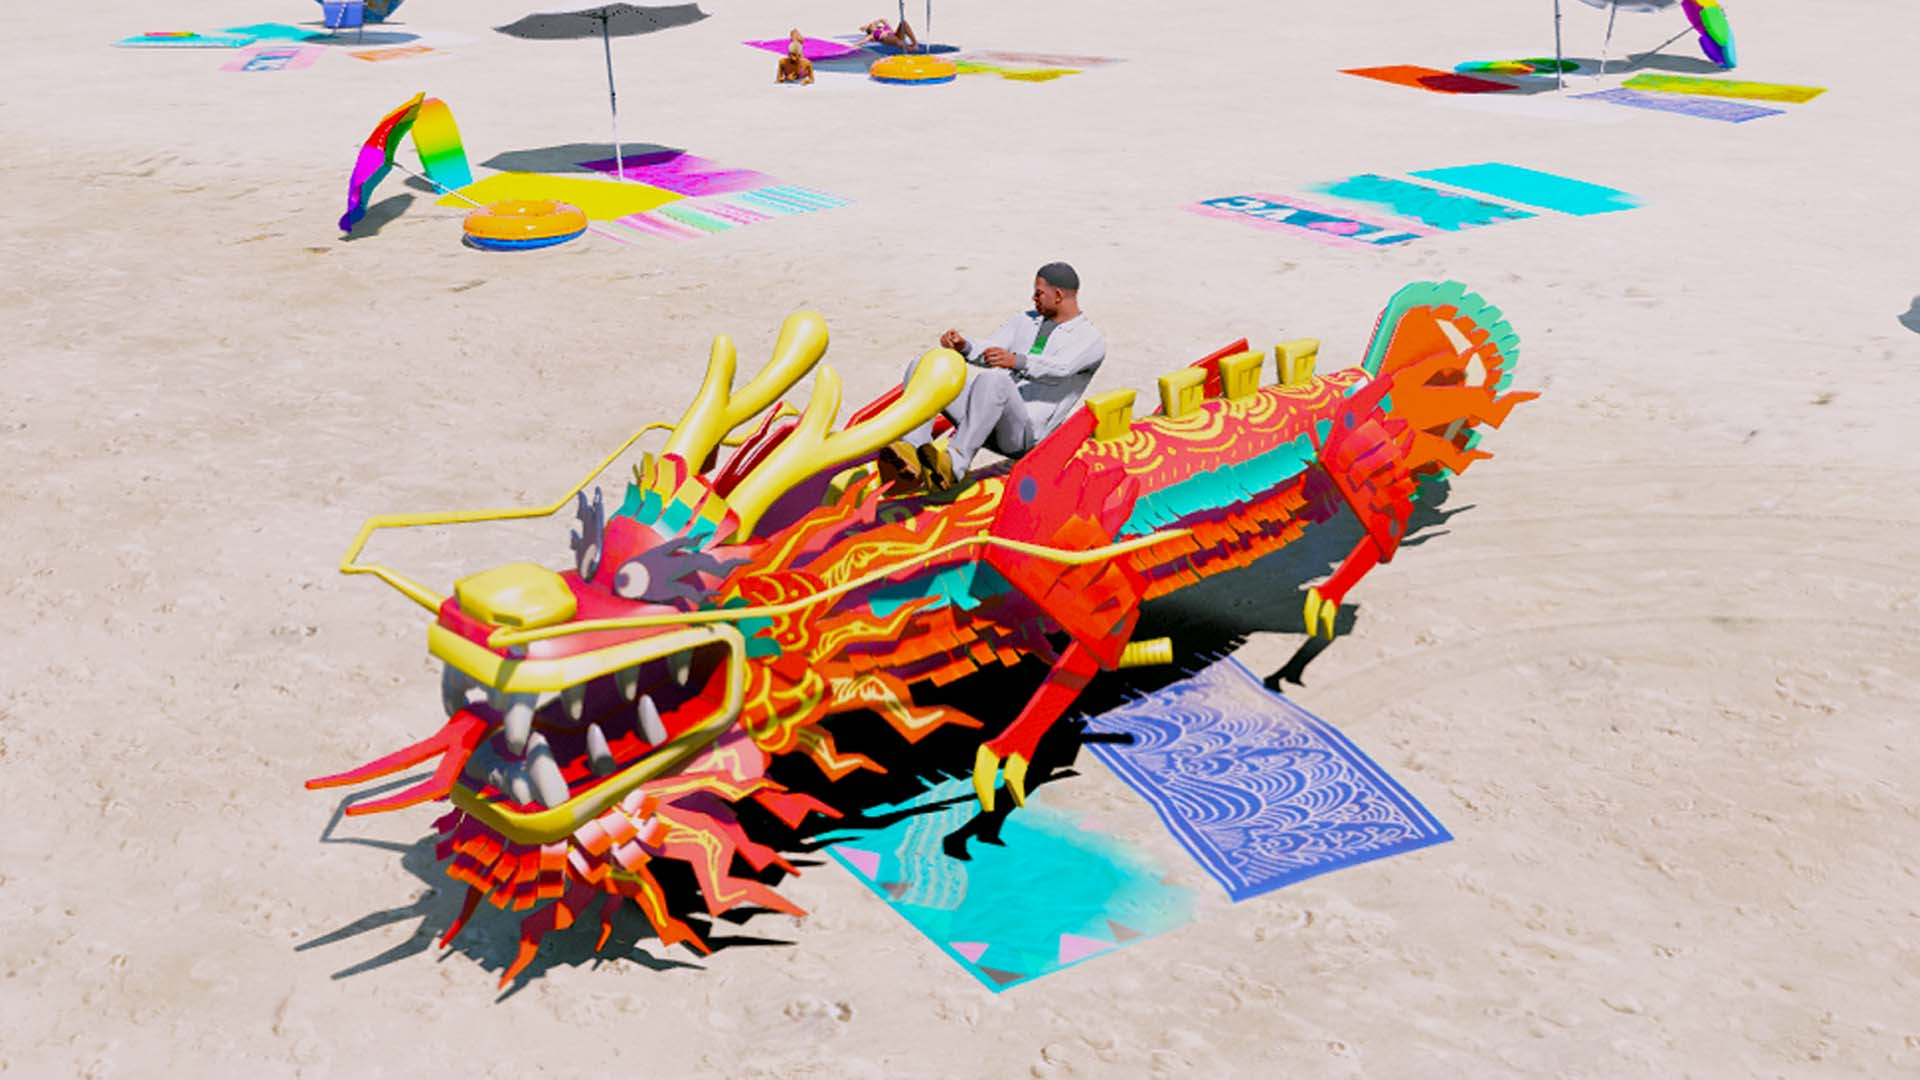 gta-5-mod-fortnite-dragon-glider-car